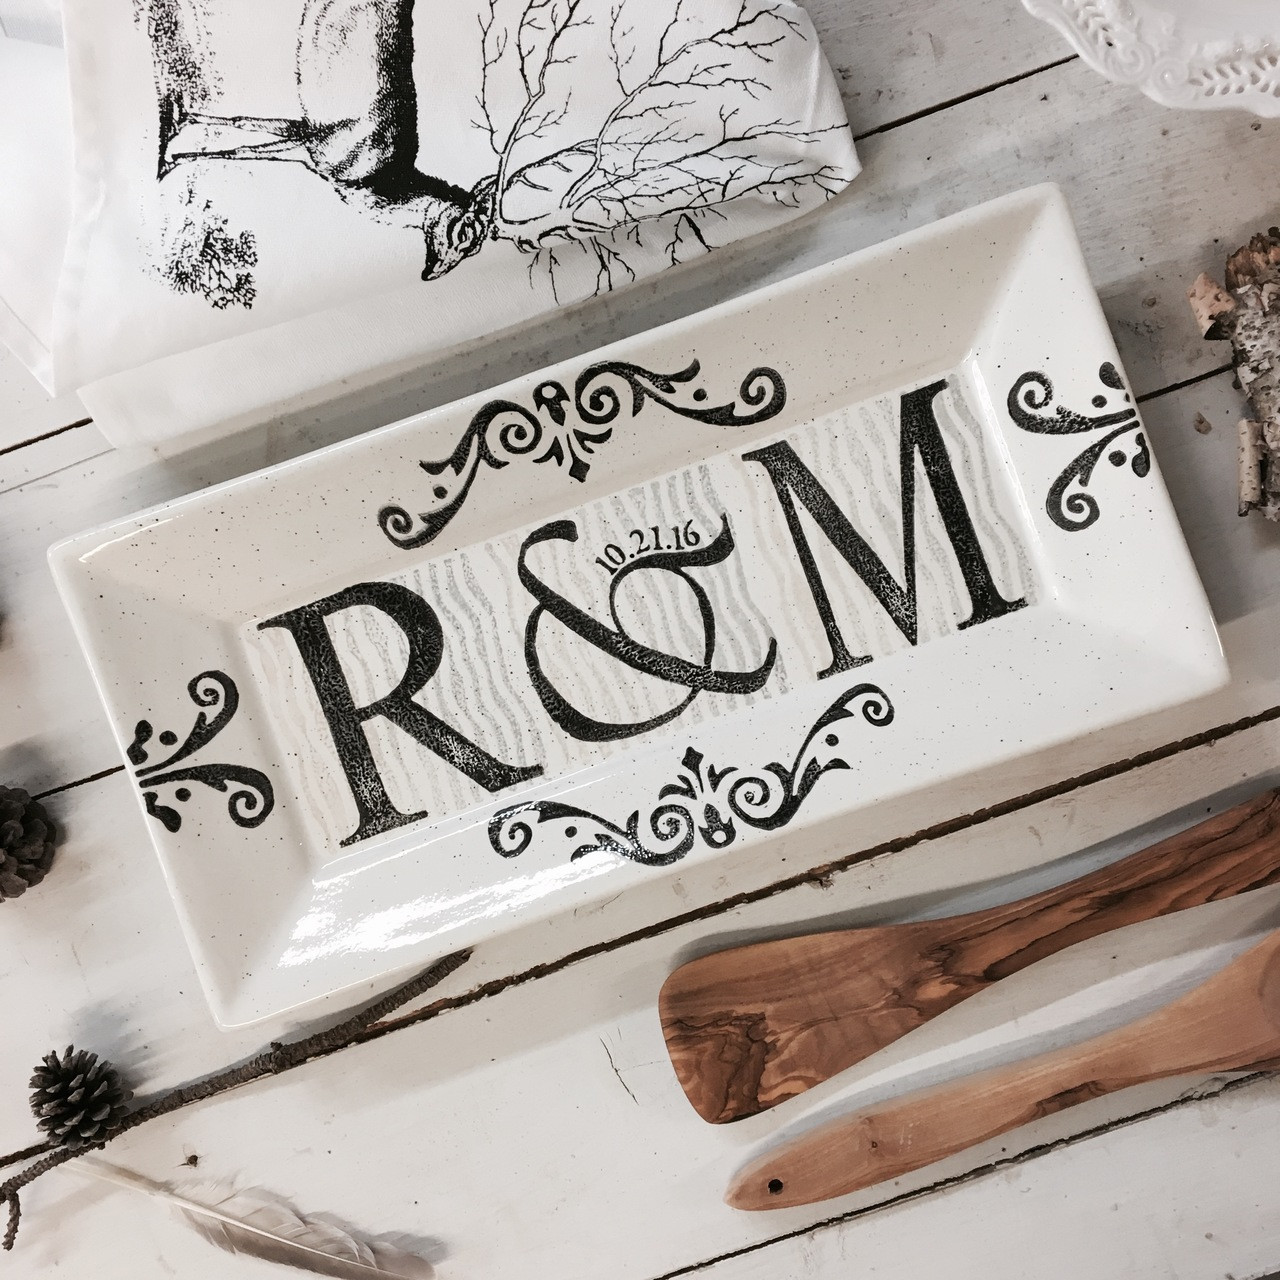 Monogramed Wedding Gifts: Monogrammed Wedding Gifts, Personalized Wedding Platter